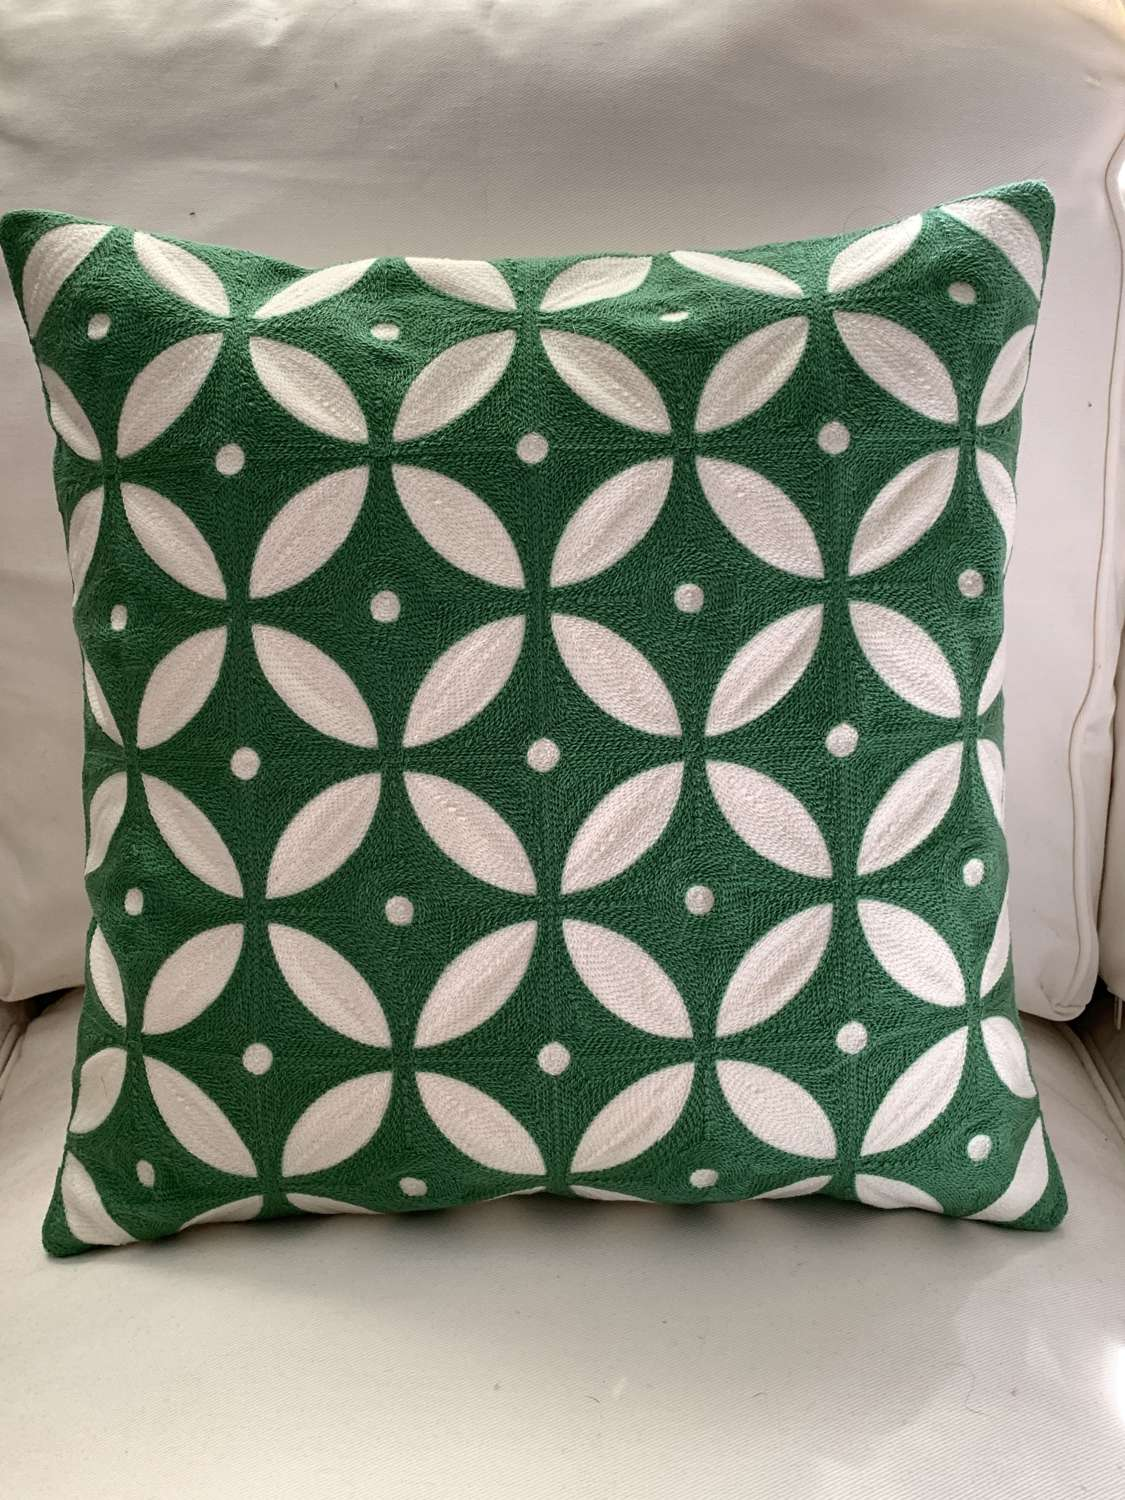 Green crewel work cushion with feather pad